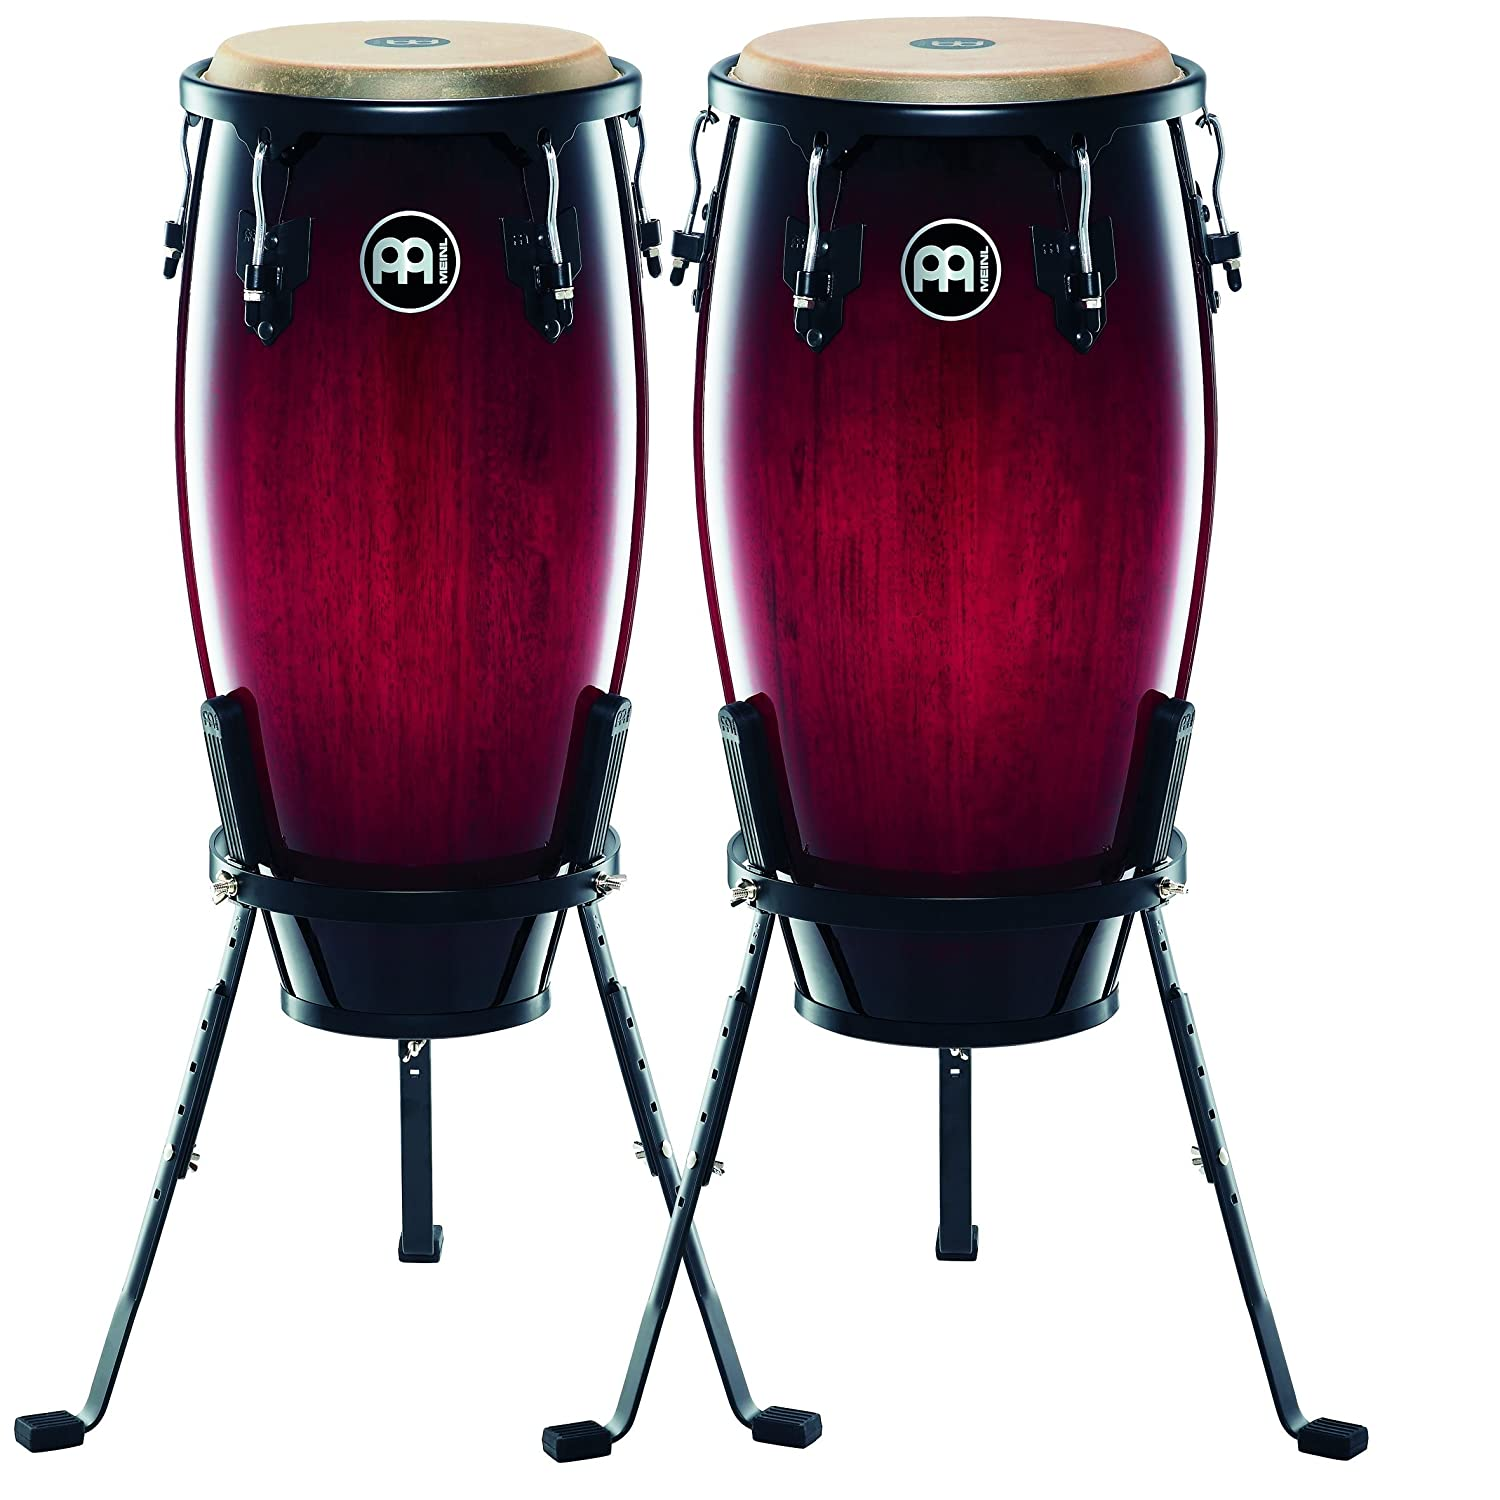 Meinl Percussion HC512WRB Headliner Series 11-Inch and 12-Inch Conga Set With Basket Stands, Wine Red Burst Meinl USA L.C.